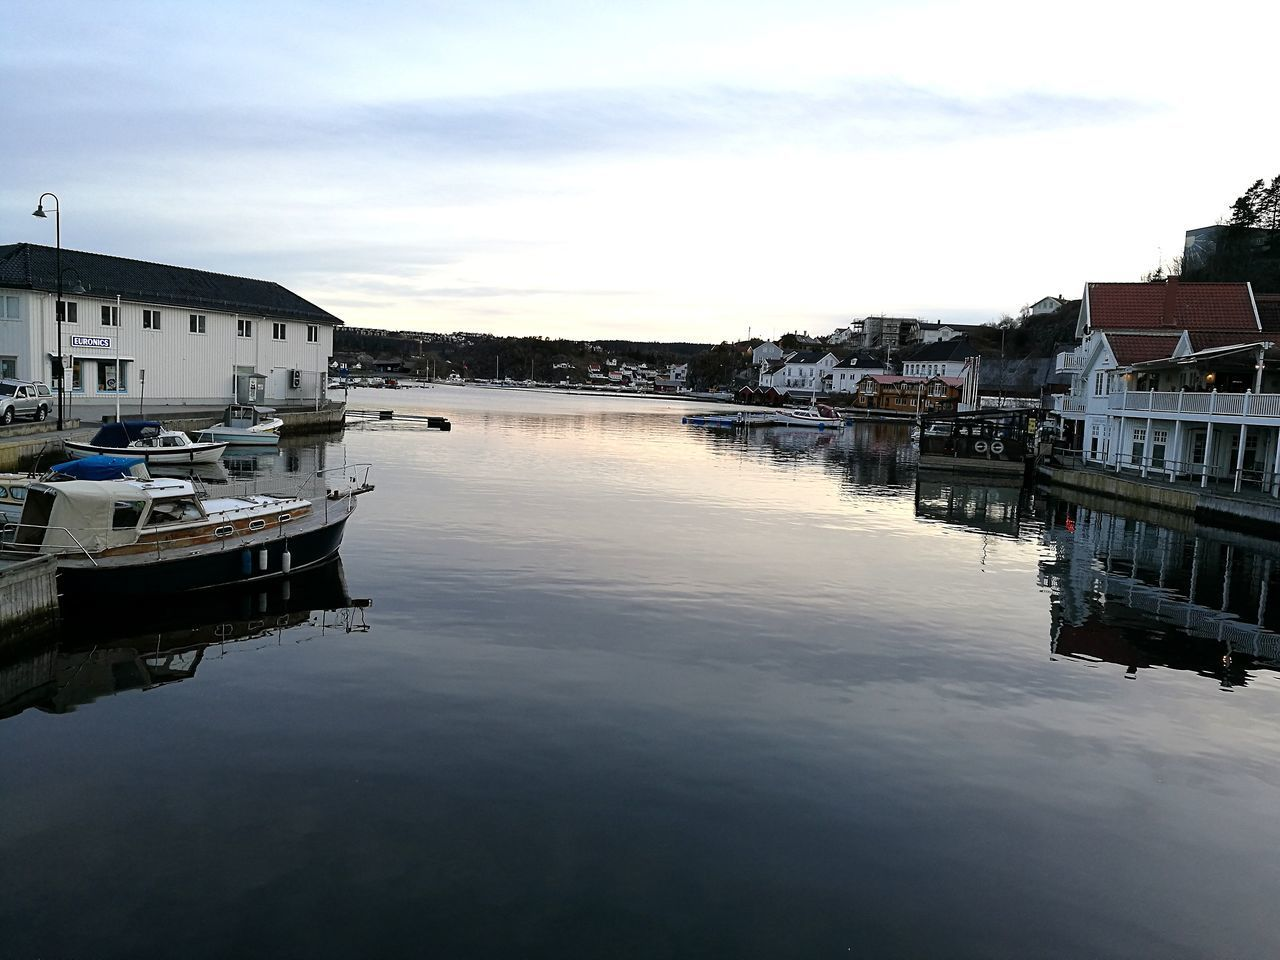 Reflection Water Architecture Moored Building Exterior Built Structure Sky Residential Building Transportation Harbor Outdoors Apartment Nautical Vessel No People Nature Nature Norway🇳🇴 Reflection Lake Cityscape Yacht Day Kragerø Kragerø♥